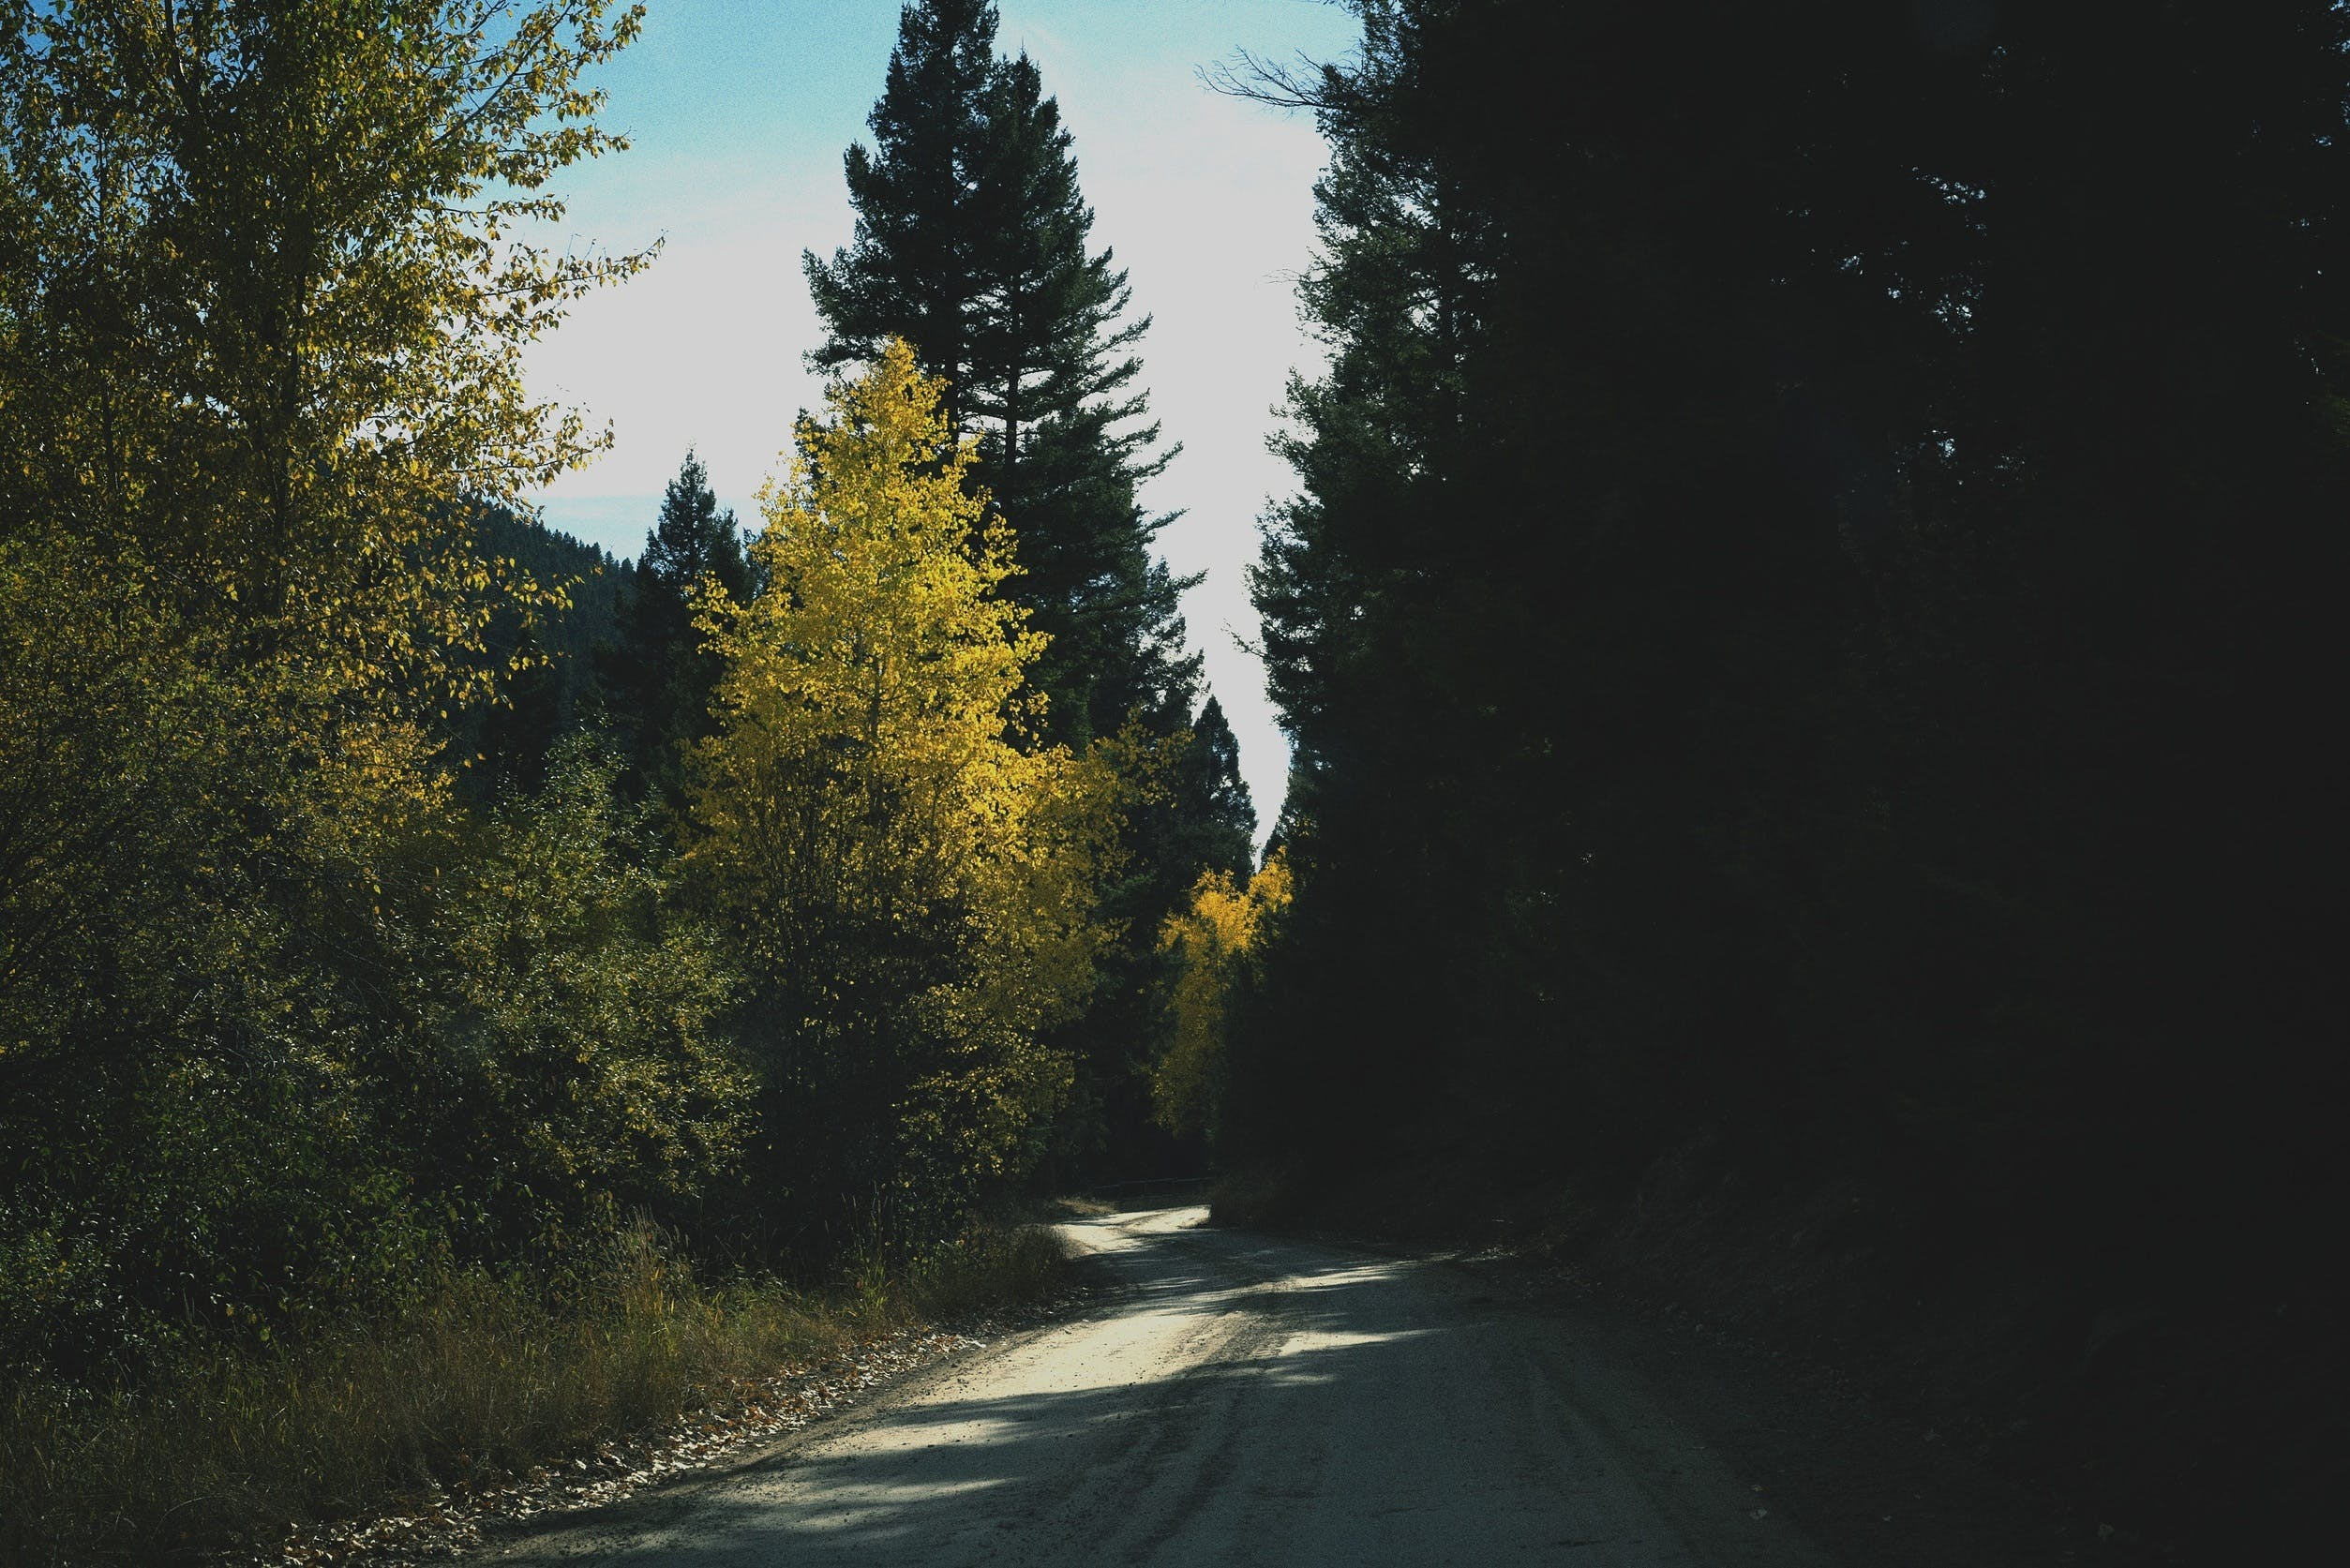 Free stock photo of road, rural, shadows, trees